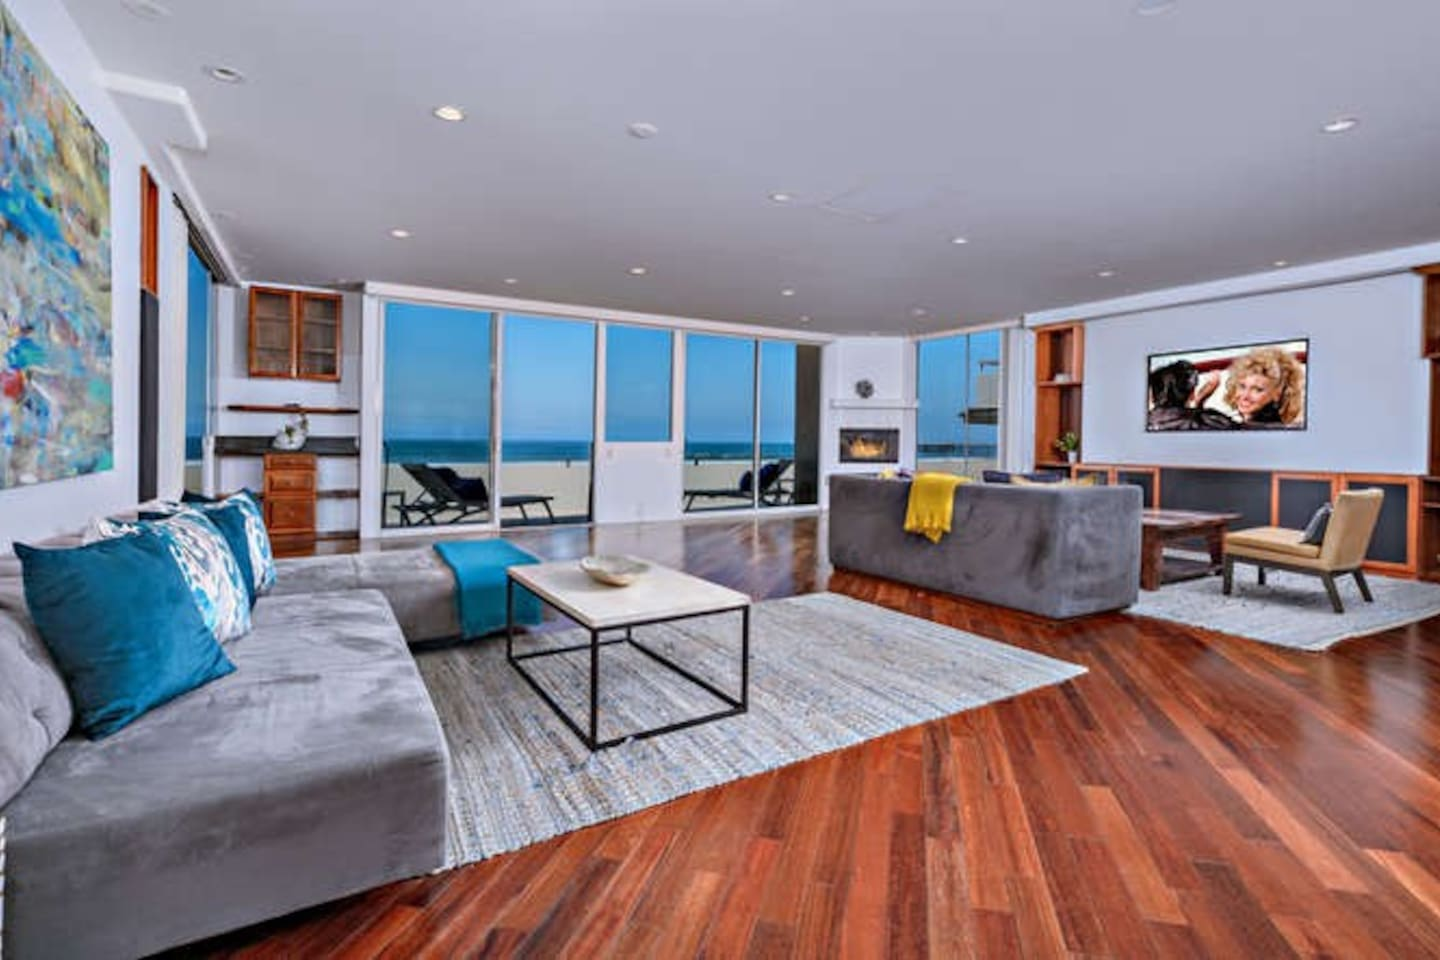 Living room area with plenty of seating to relax and enjoy ocean view.